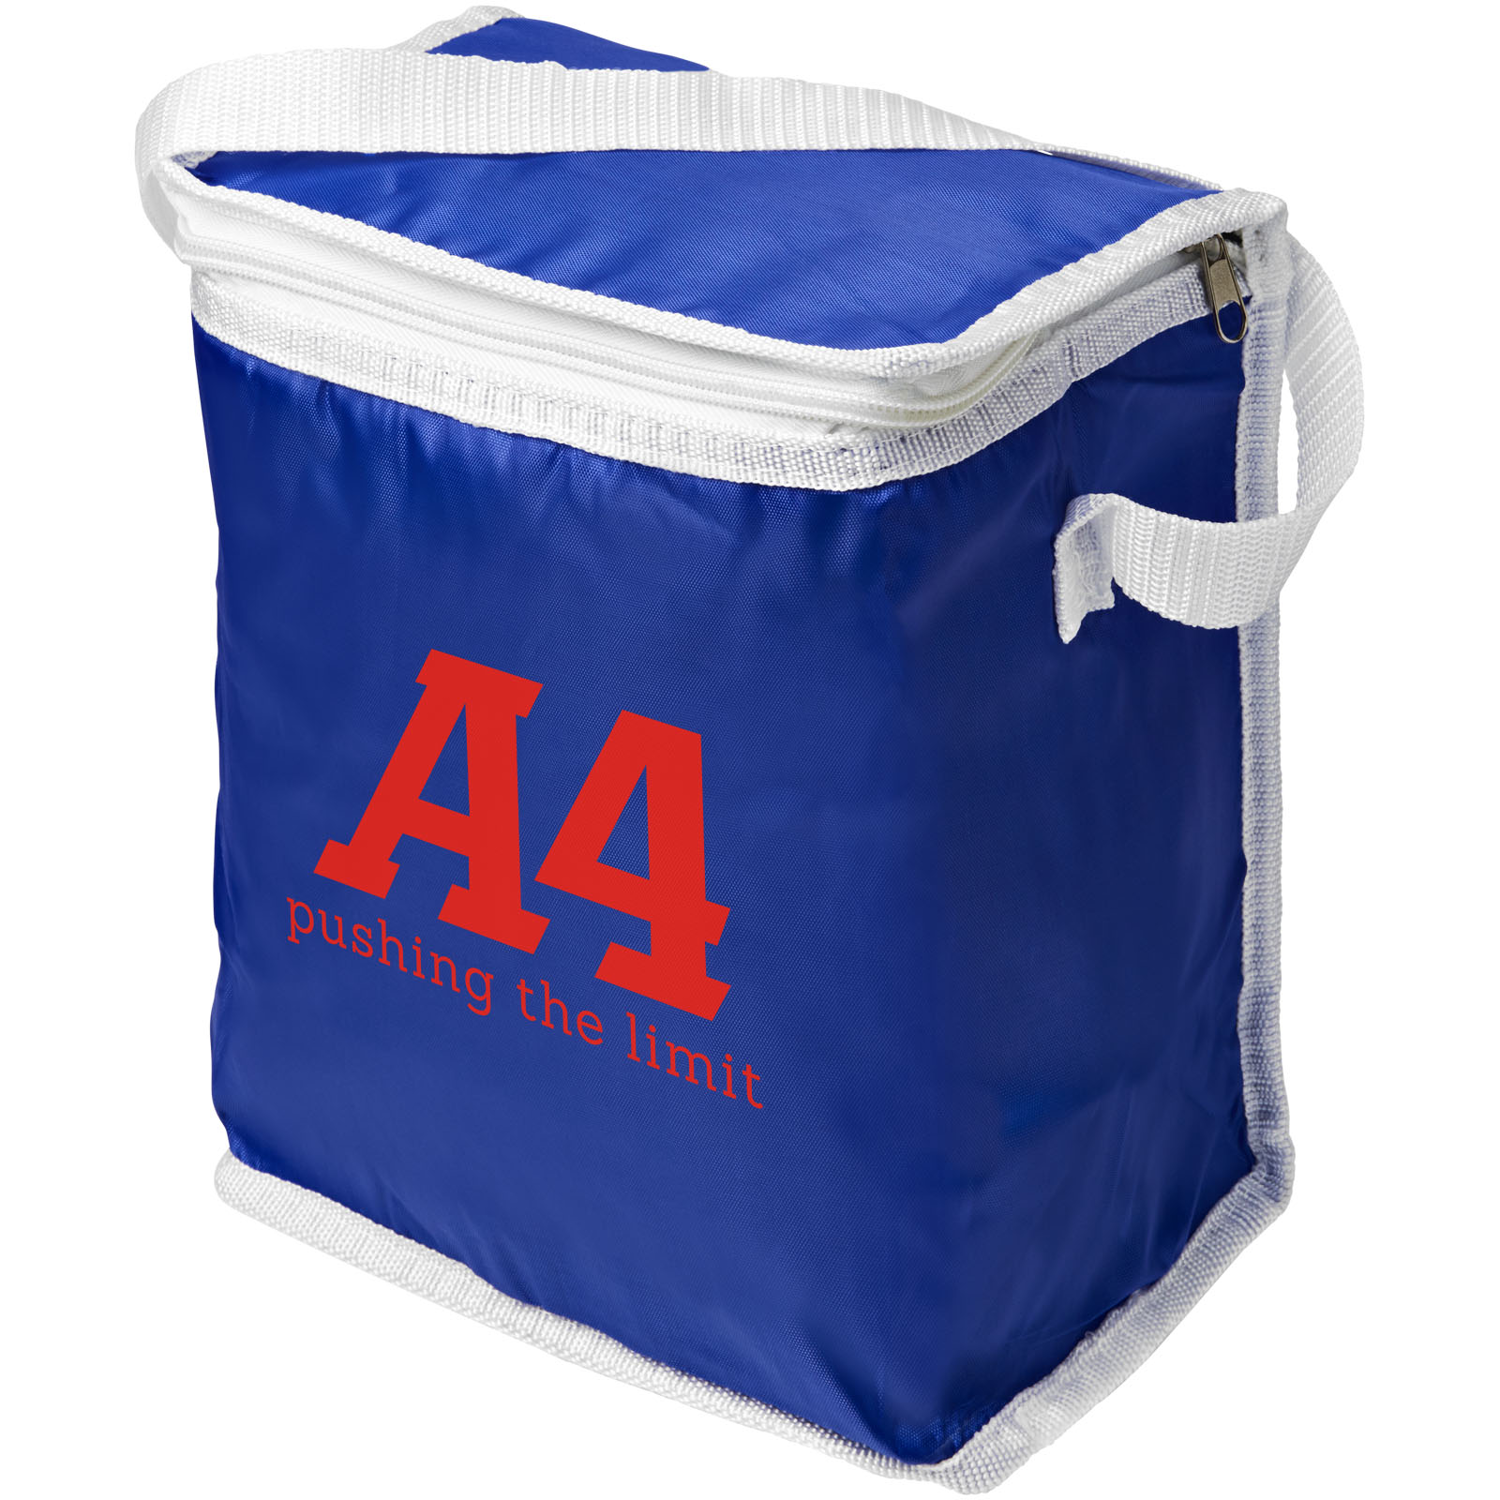 Tower Lunch Cooler Bag